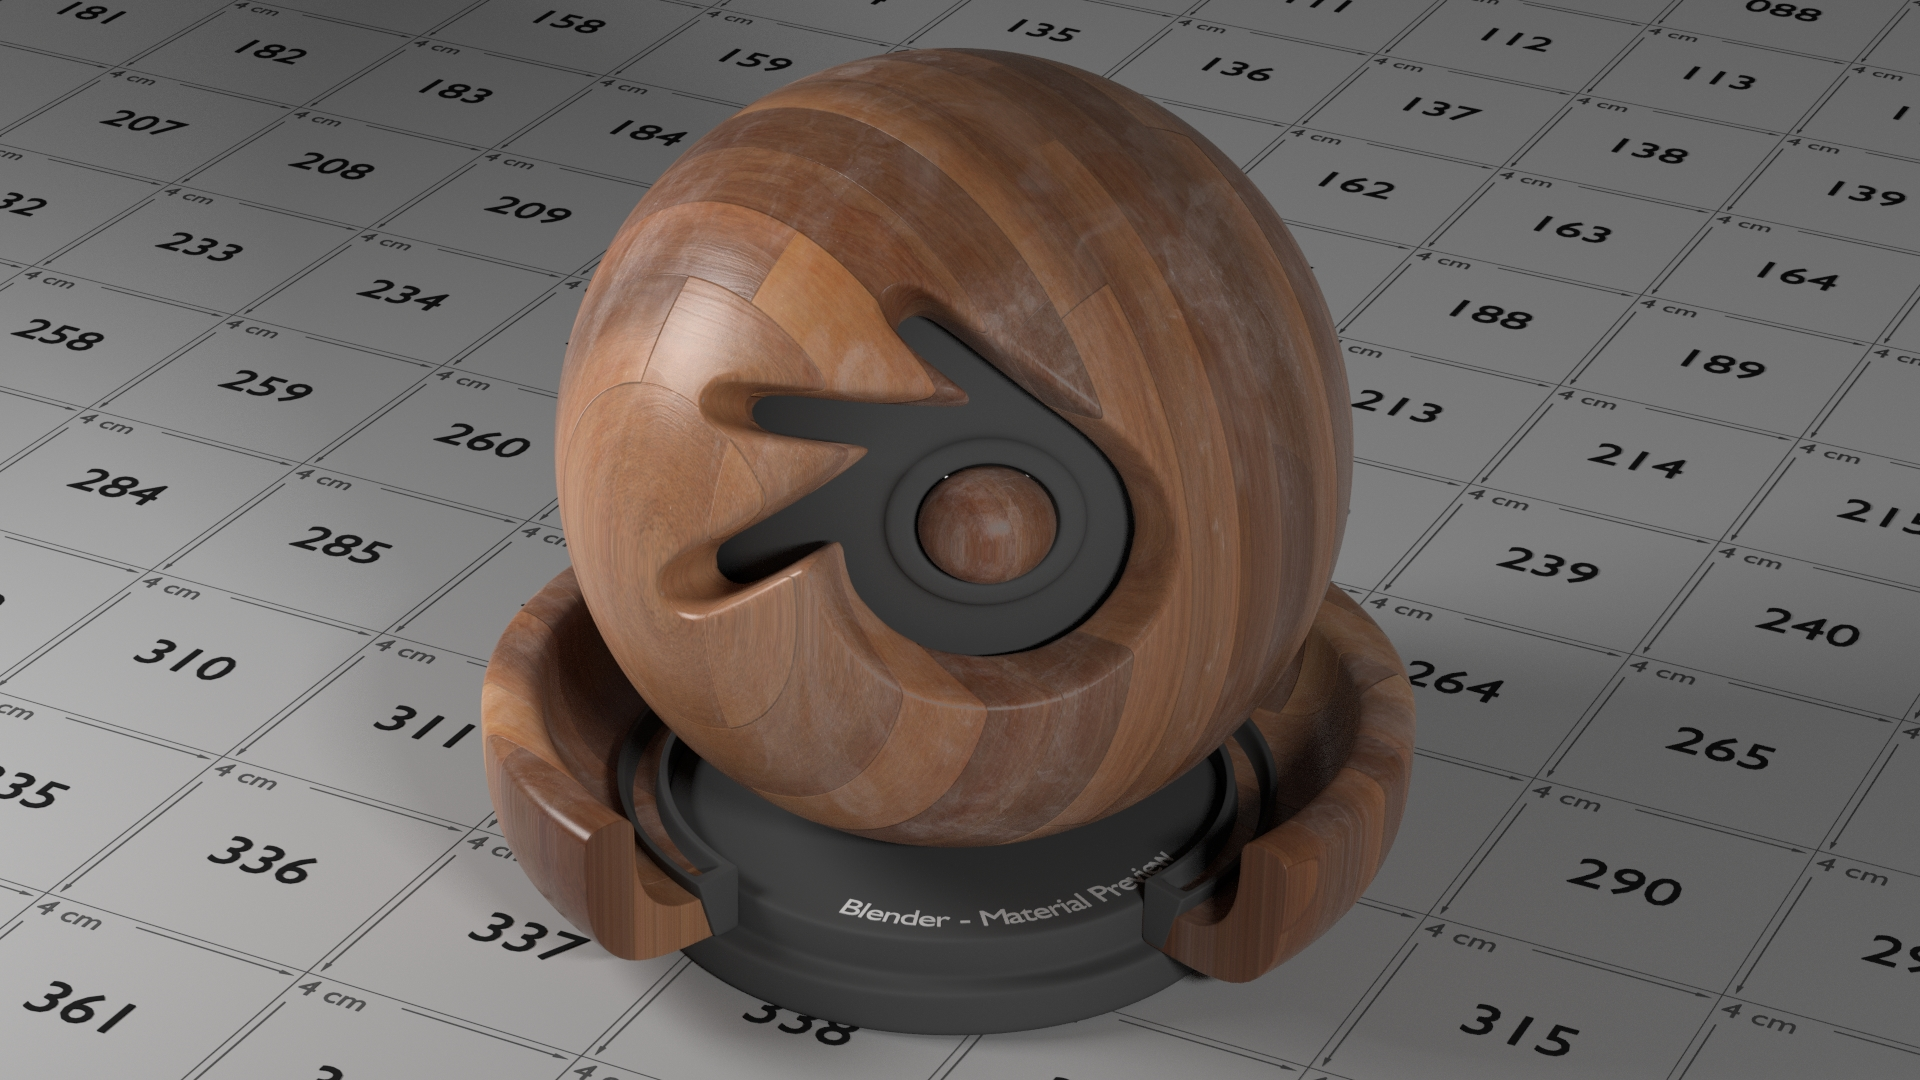 Wood Material Nodes Blender Cycles preview image 1